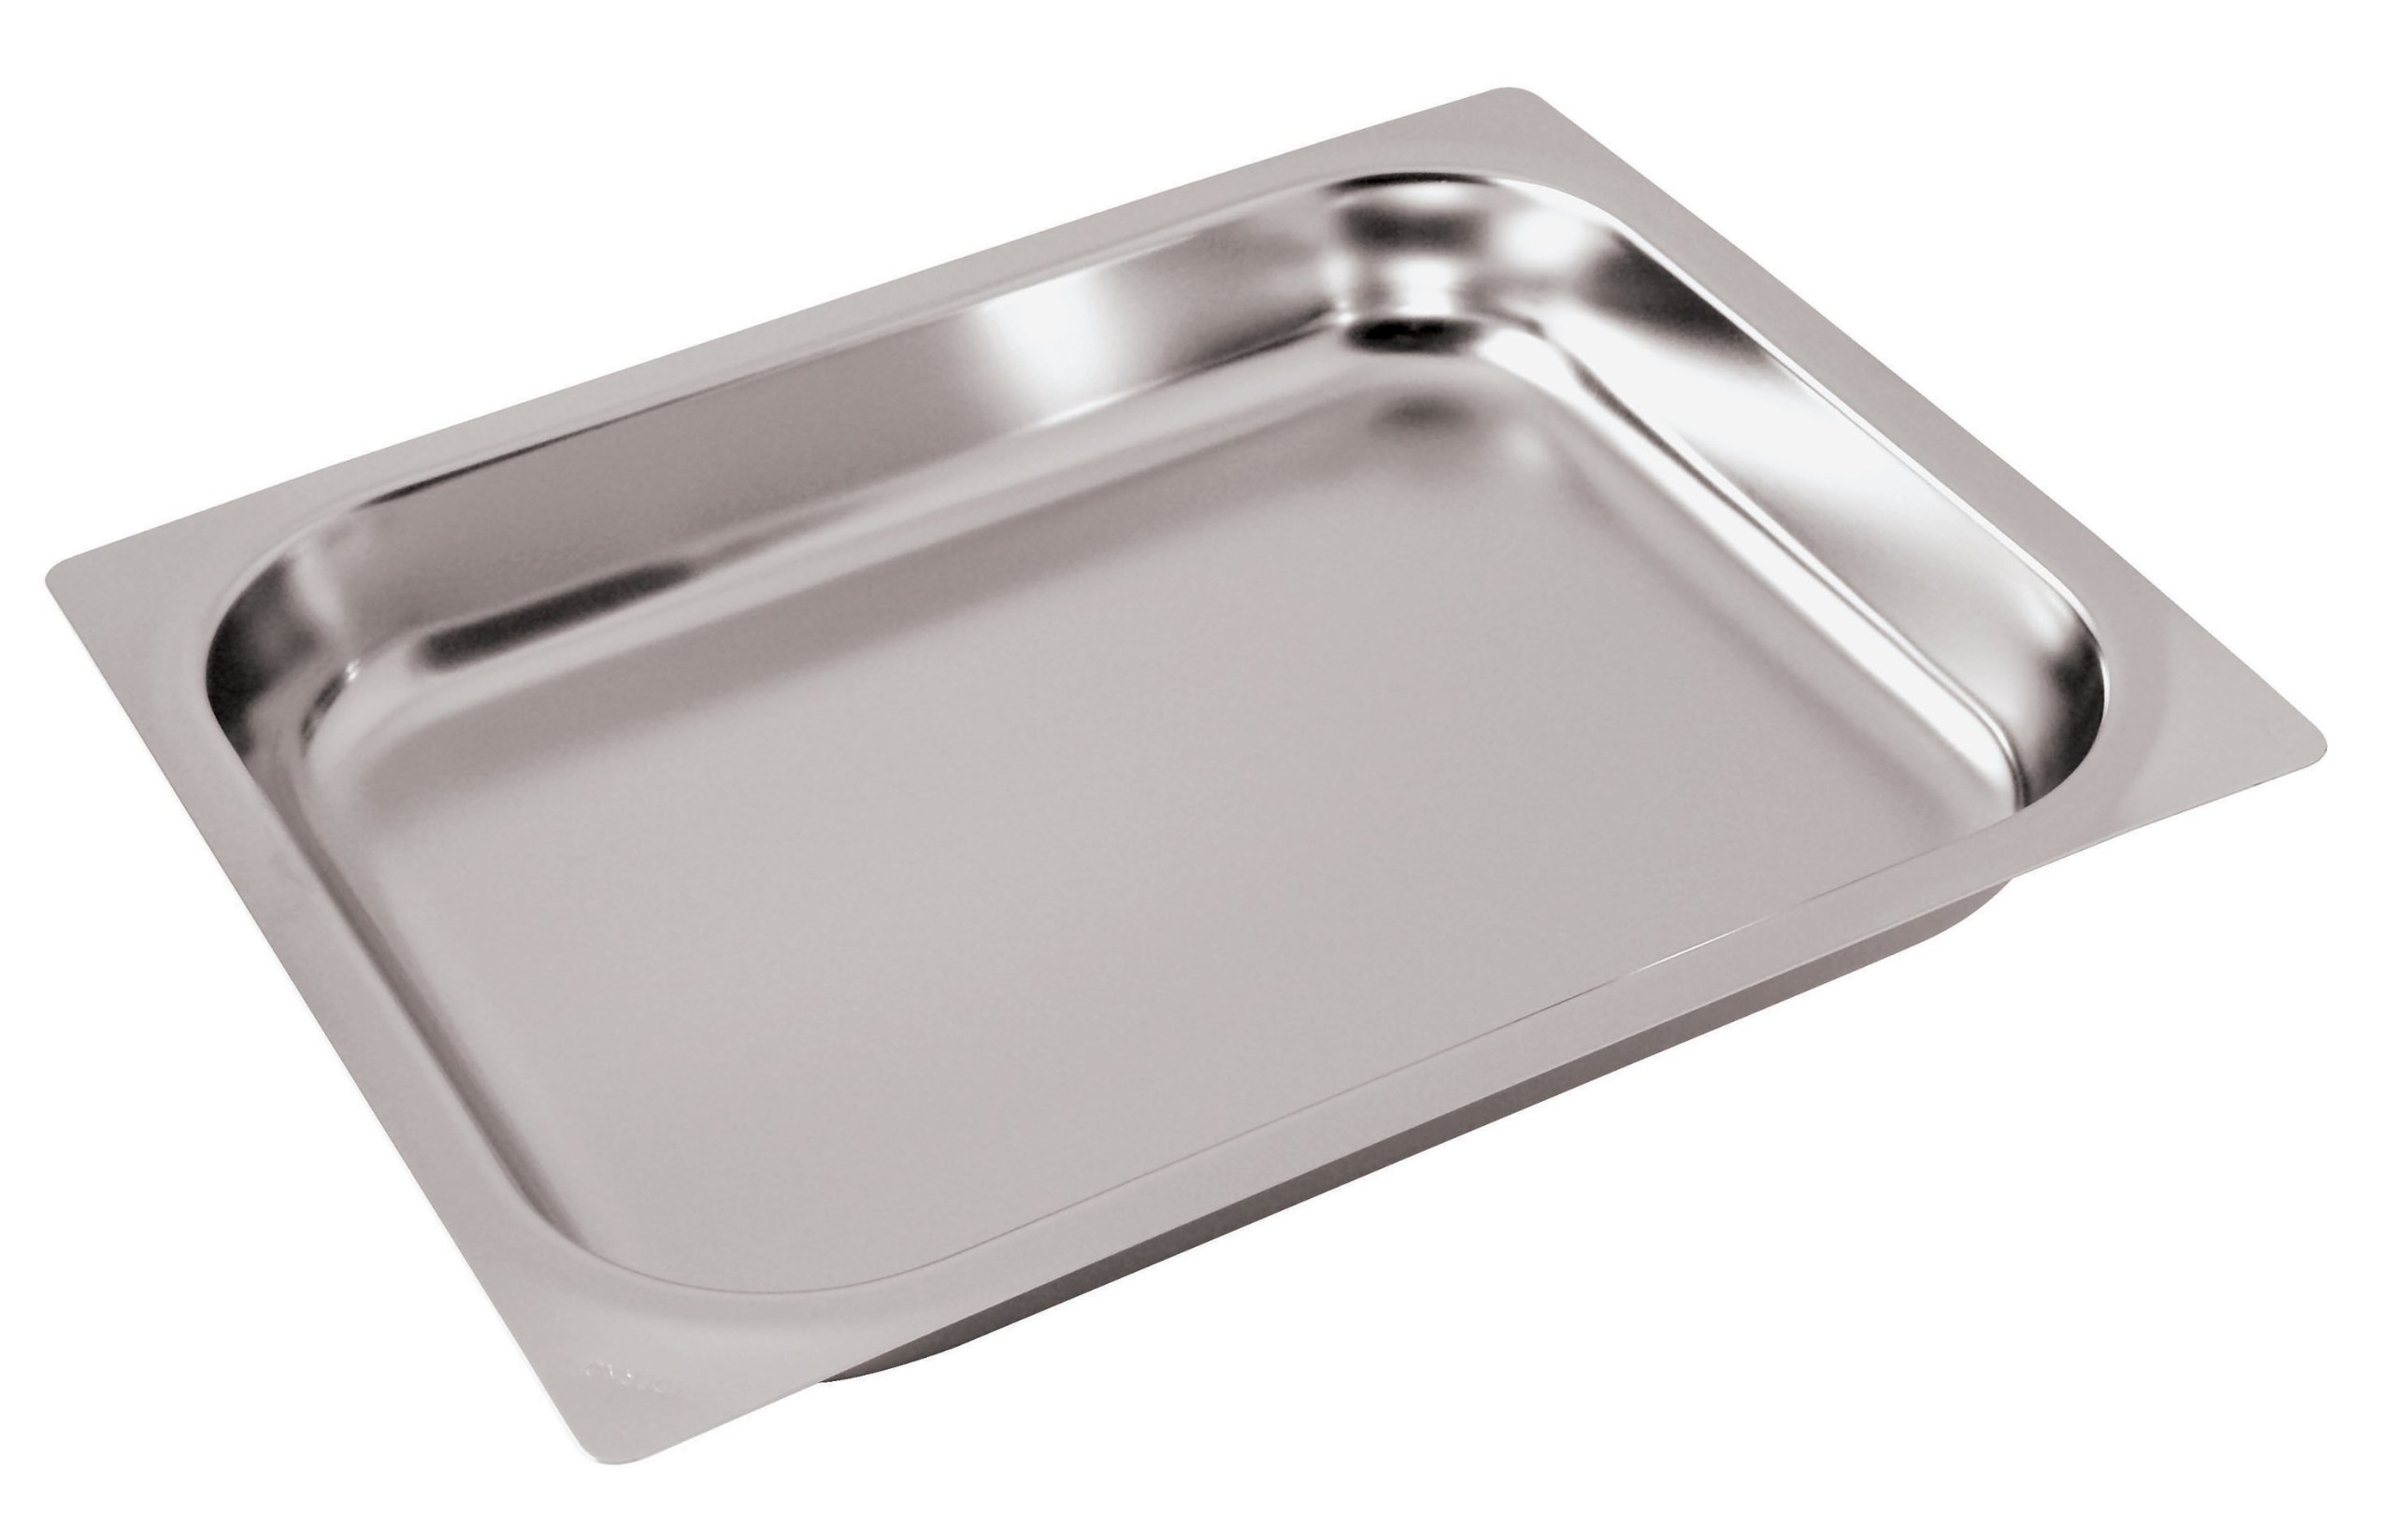 Paderno World Cuisine 14 inches by 12 1/2 inches Stainless-steel Baking Sheet for Hotel Pan - 2/3 (depth: 3/4 inches)